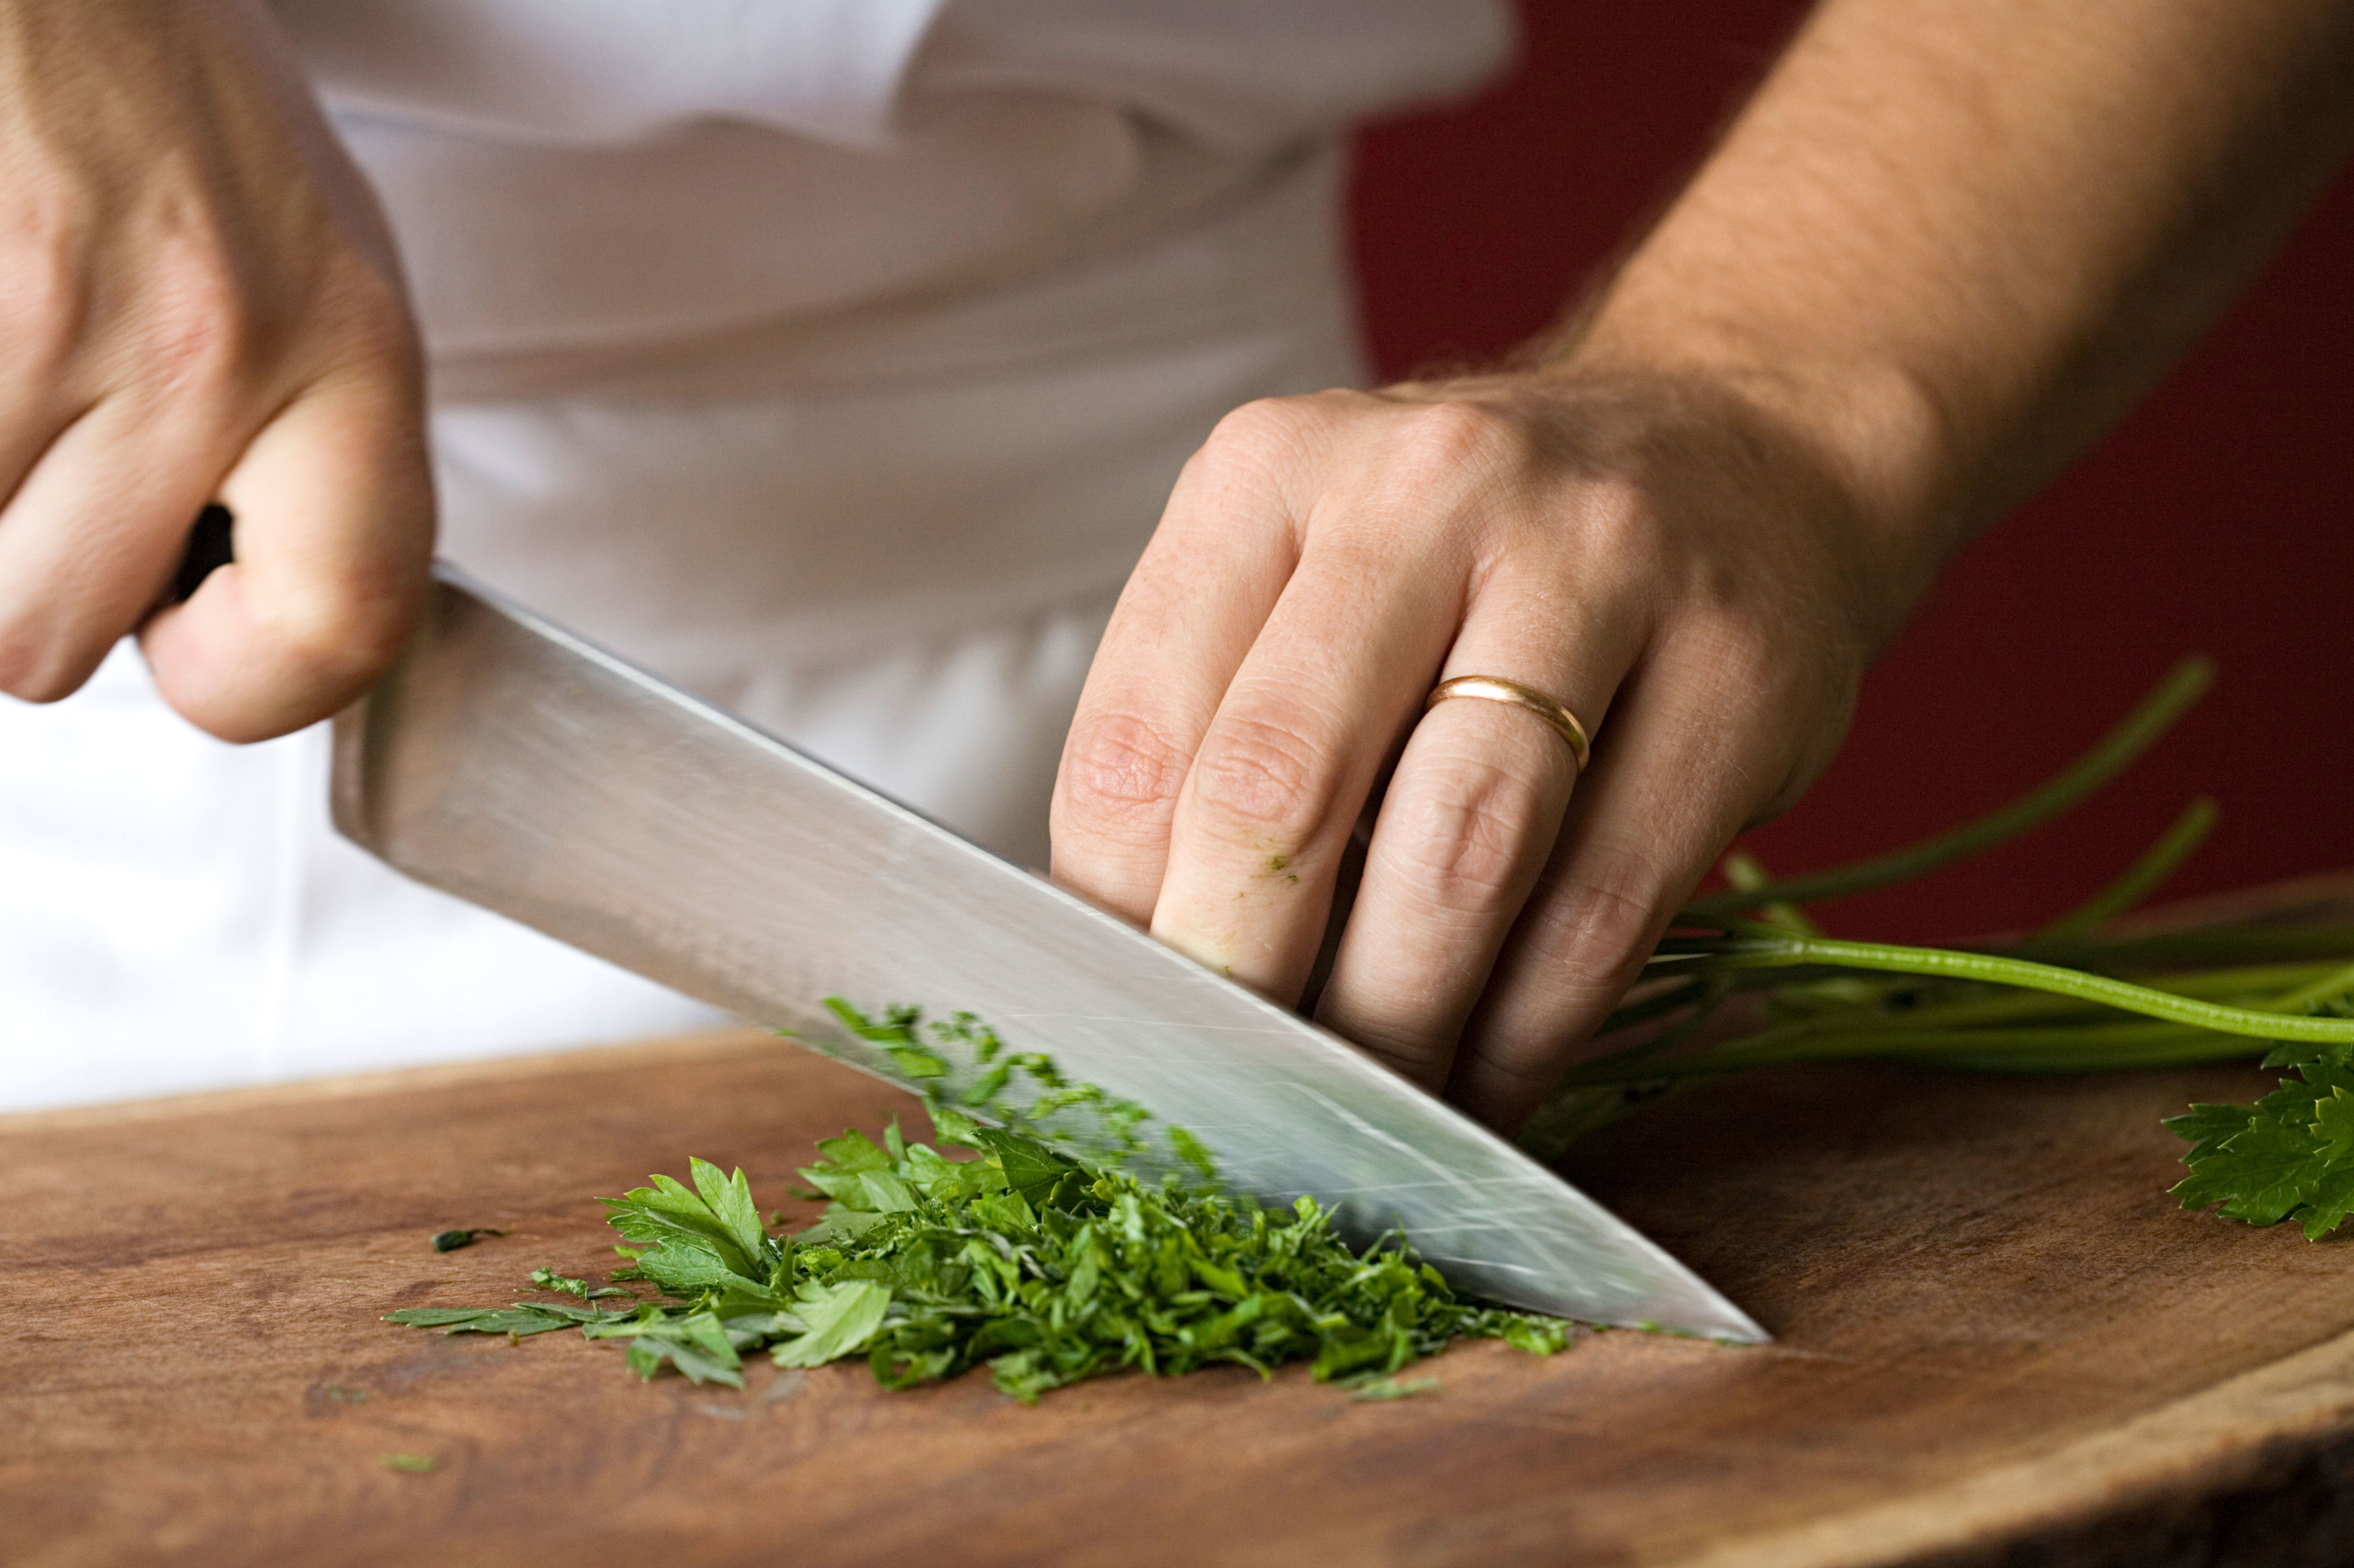 This Common Mistake May Be Dulling Your Knives